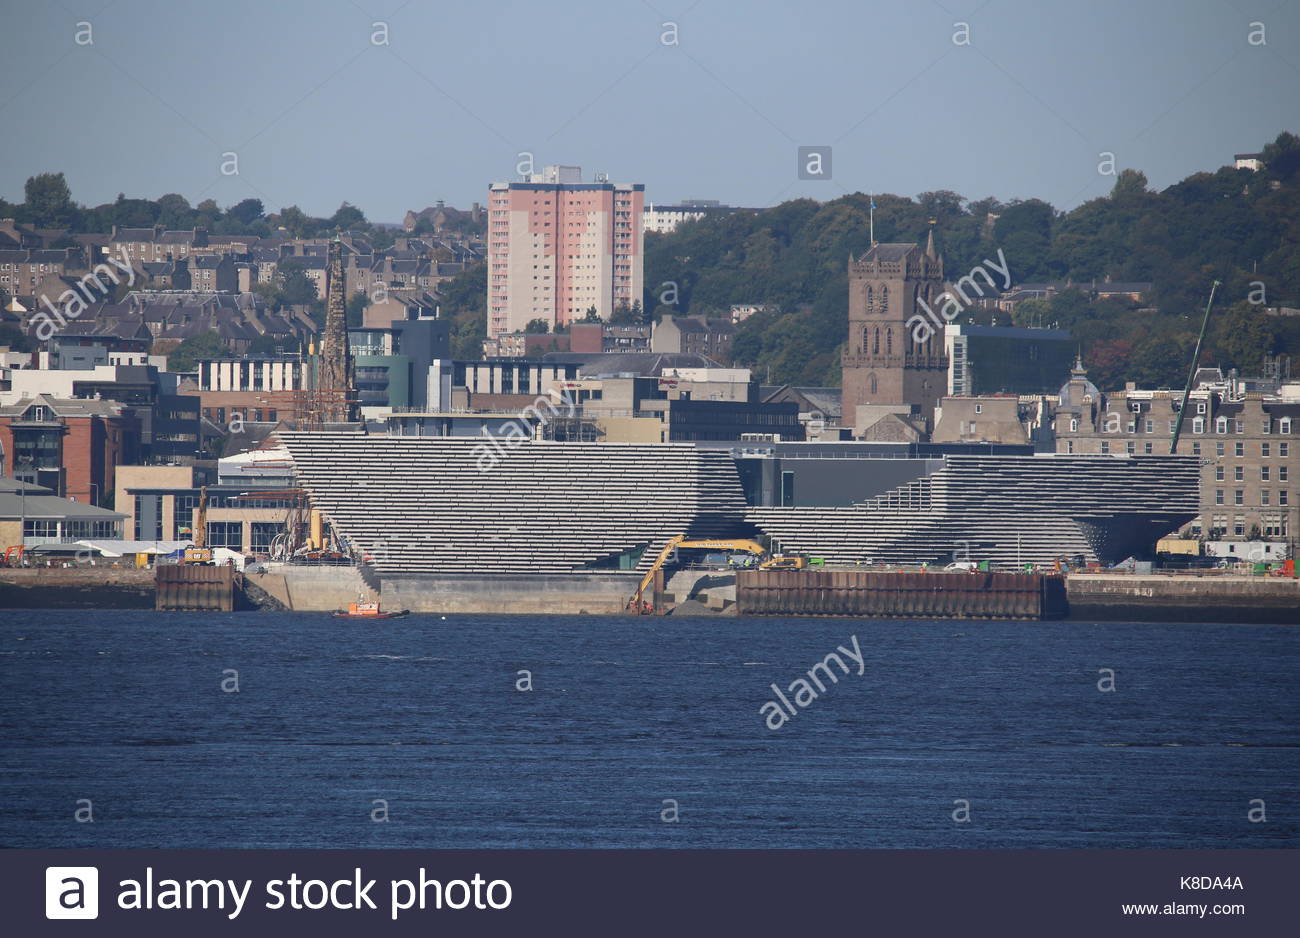 Cofferdam removal at V & A Design Museum construction site Dundee Scotland  19th September 2017 - Stock Image